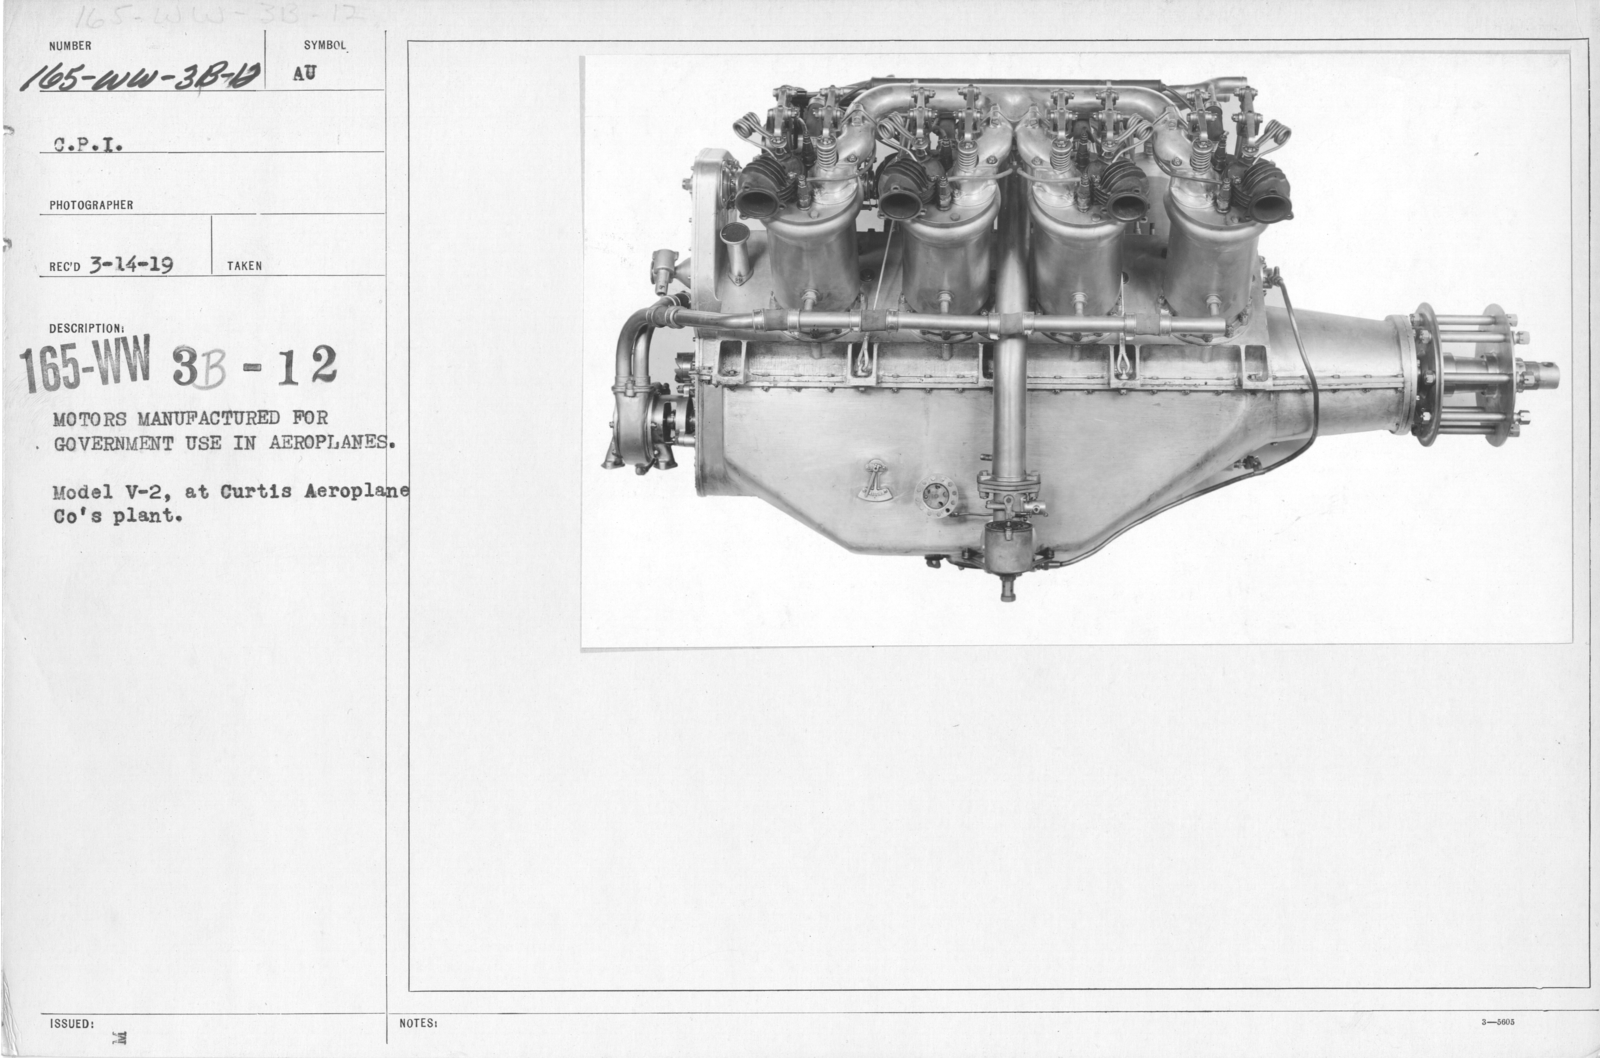 Airplanes - Engines - Motors manufactured for government use in aeroplanes. Model V-2 motor, at Curtiss Aeroplane Co's plant. C.P.I